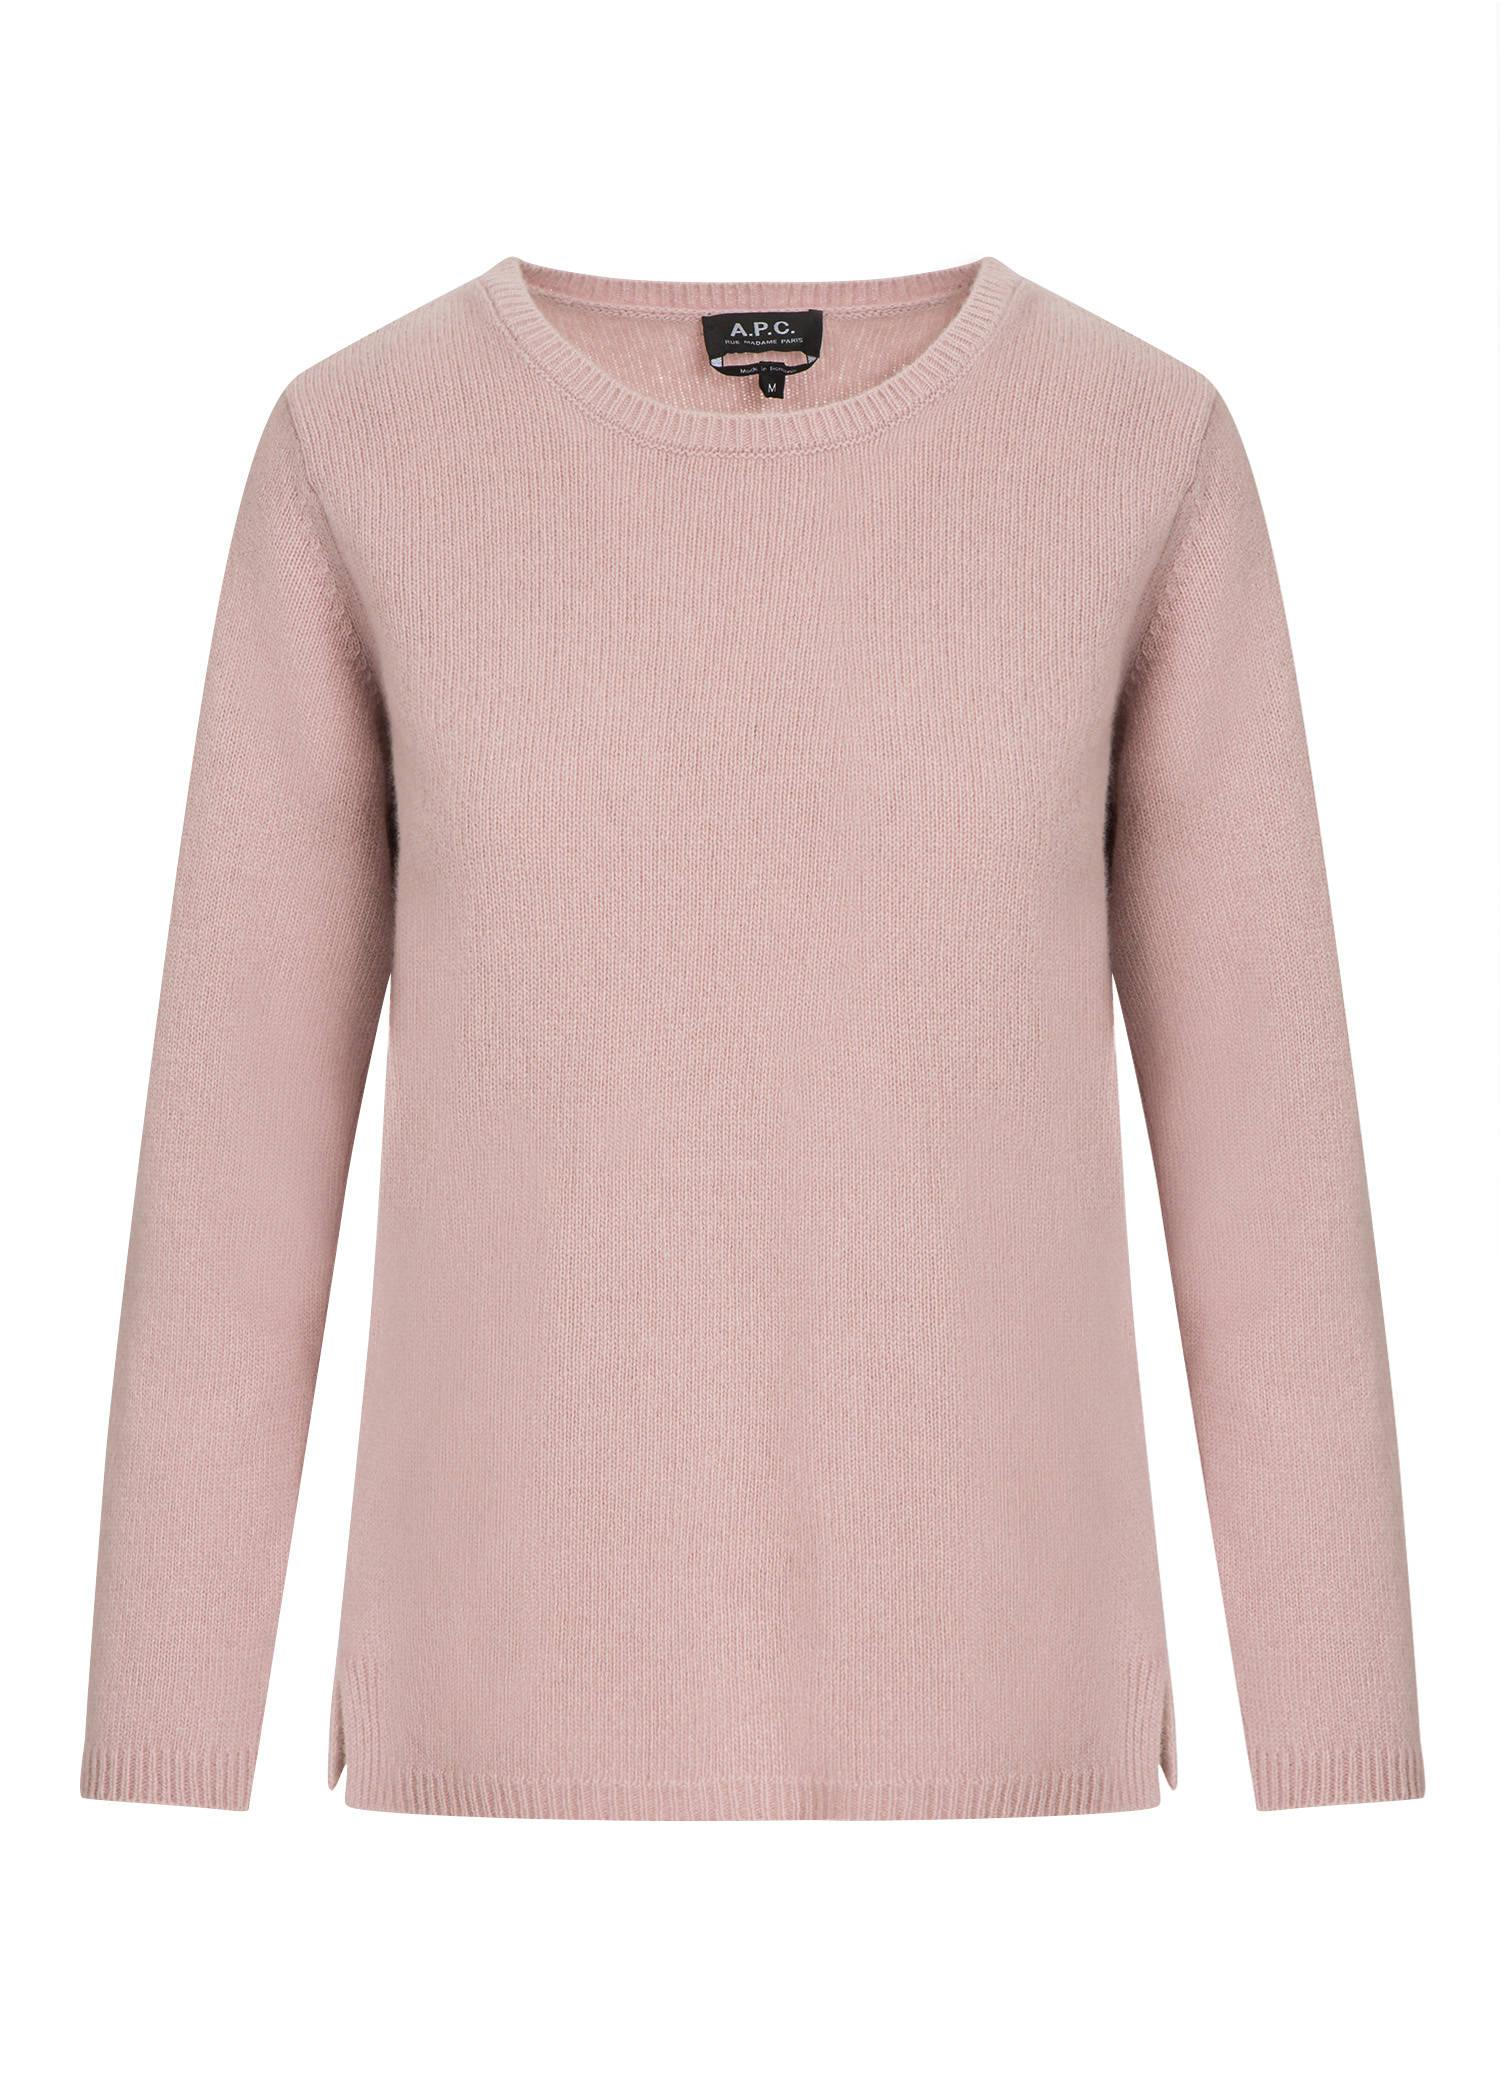 A.p.c. Blaze Sweater In Pale Pink